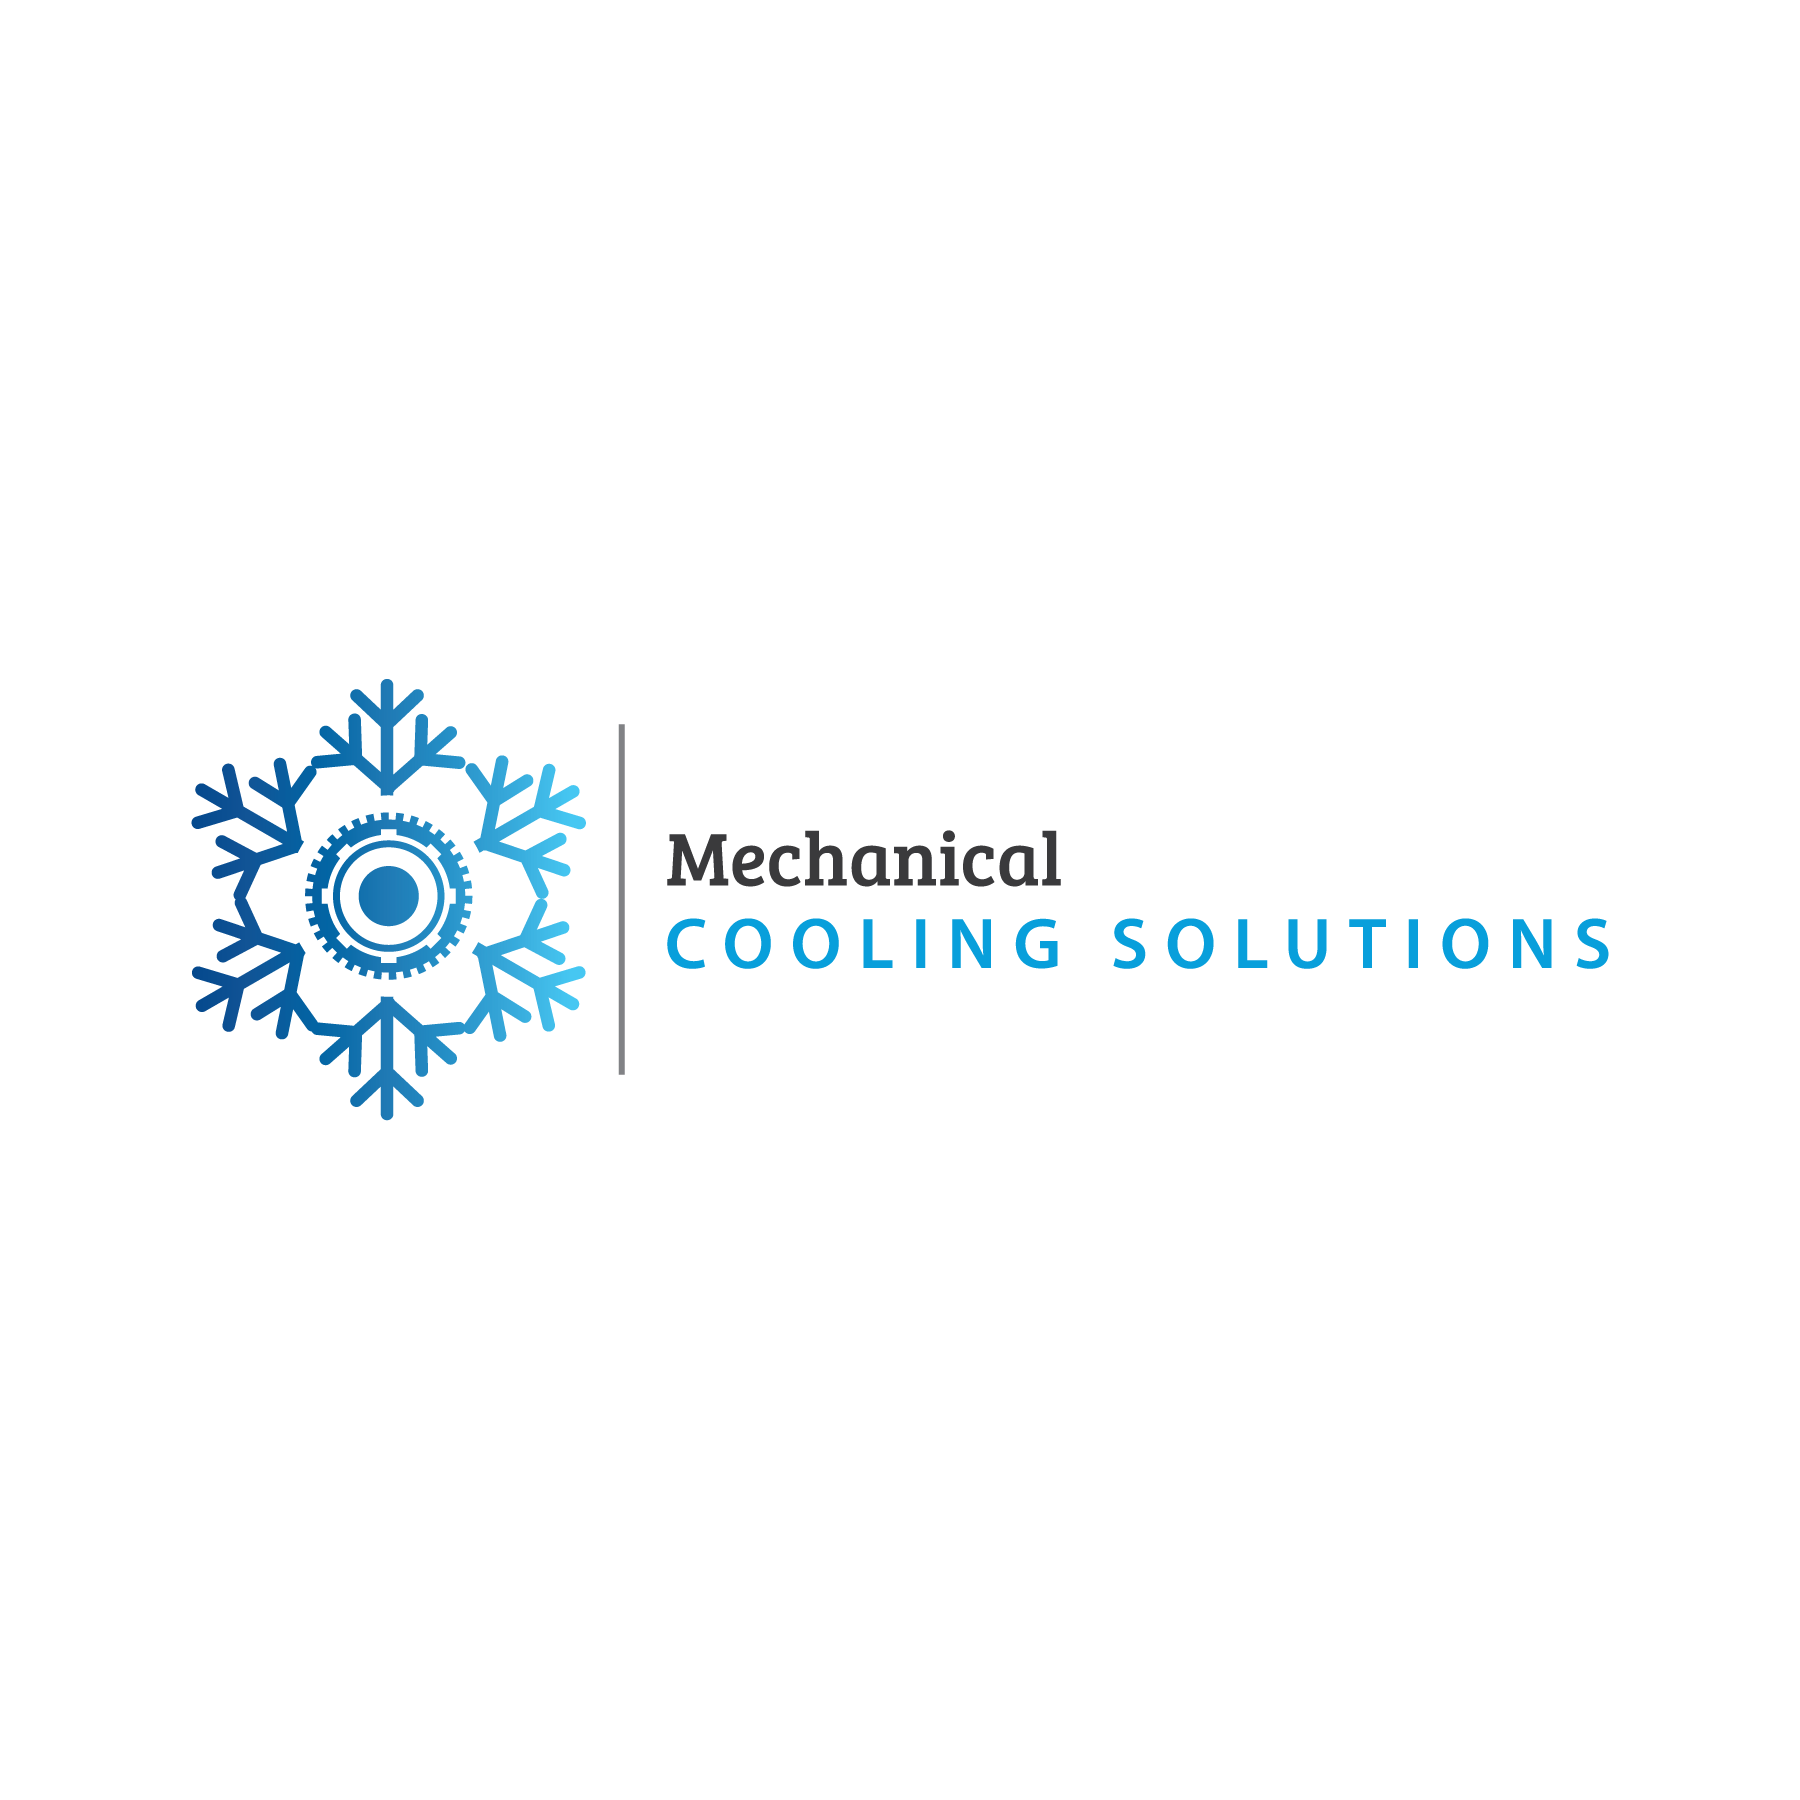 Mechanical Cooling Solutions LLC - New Braunfels, TX - Heating & Air Conditioning